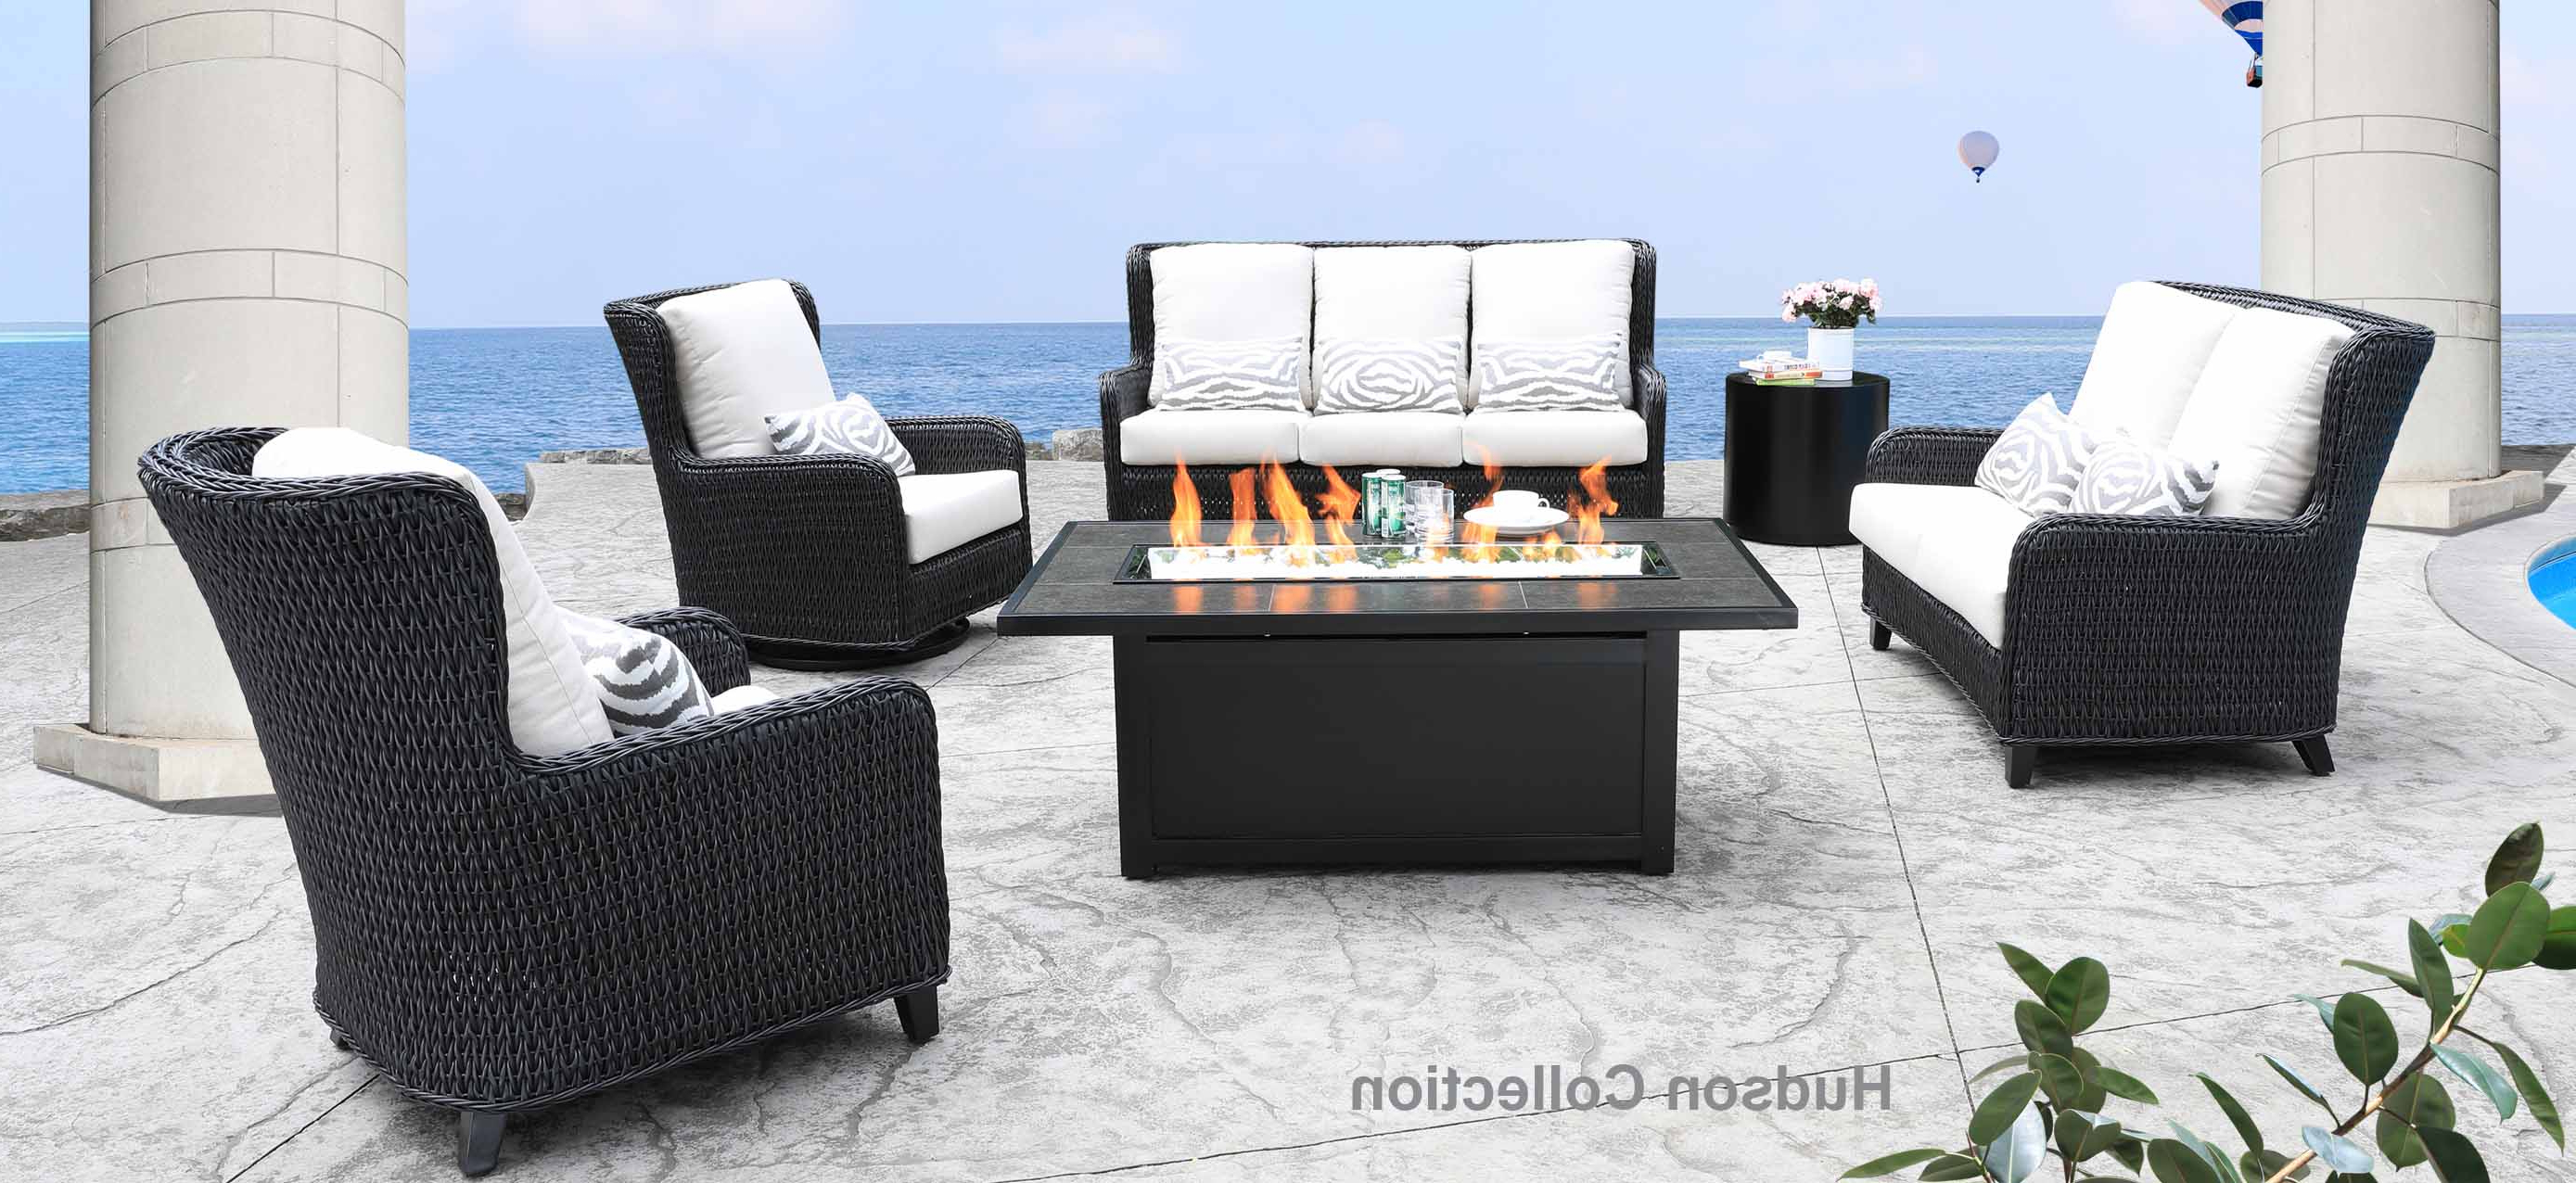 Shop Patio Furniture At Cabanacoast® For Favorite Havenside Home Cambridge Bay Chaise Lounges With Cushions (View 25 of 25)